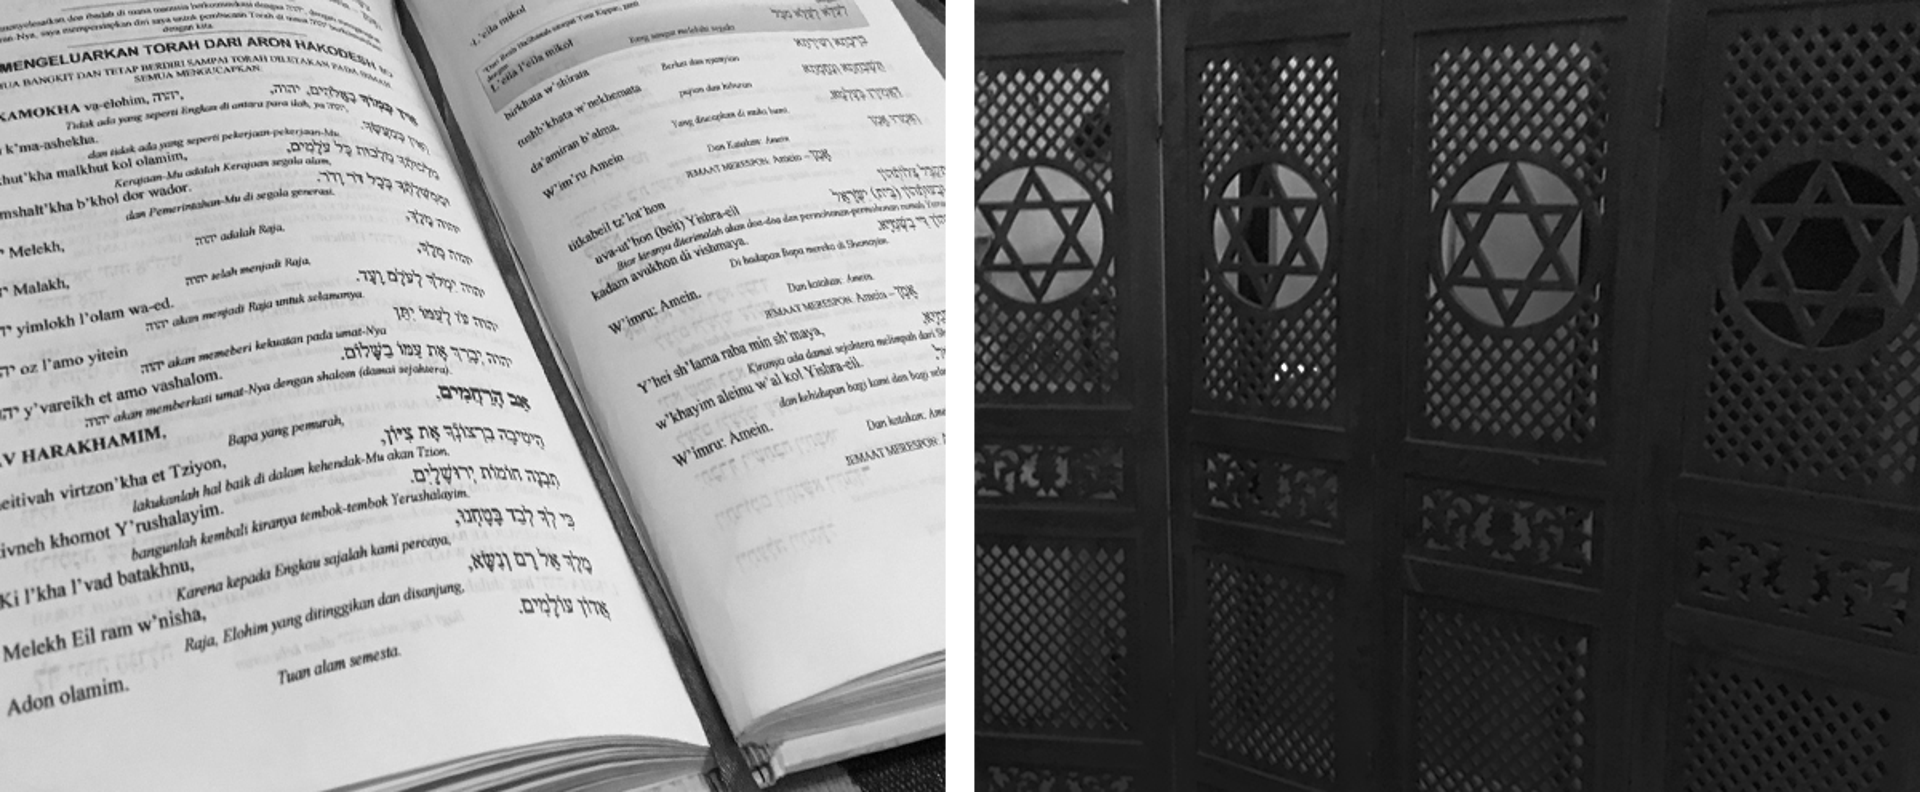 (L) Siddurim translated from Hebrew to Bahasa Indonesia. (R) The wooden divider shields the synagogue hidden in the suburb of Jakarta. Neha Banka